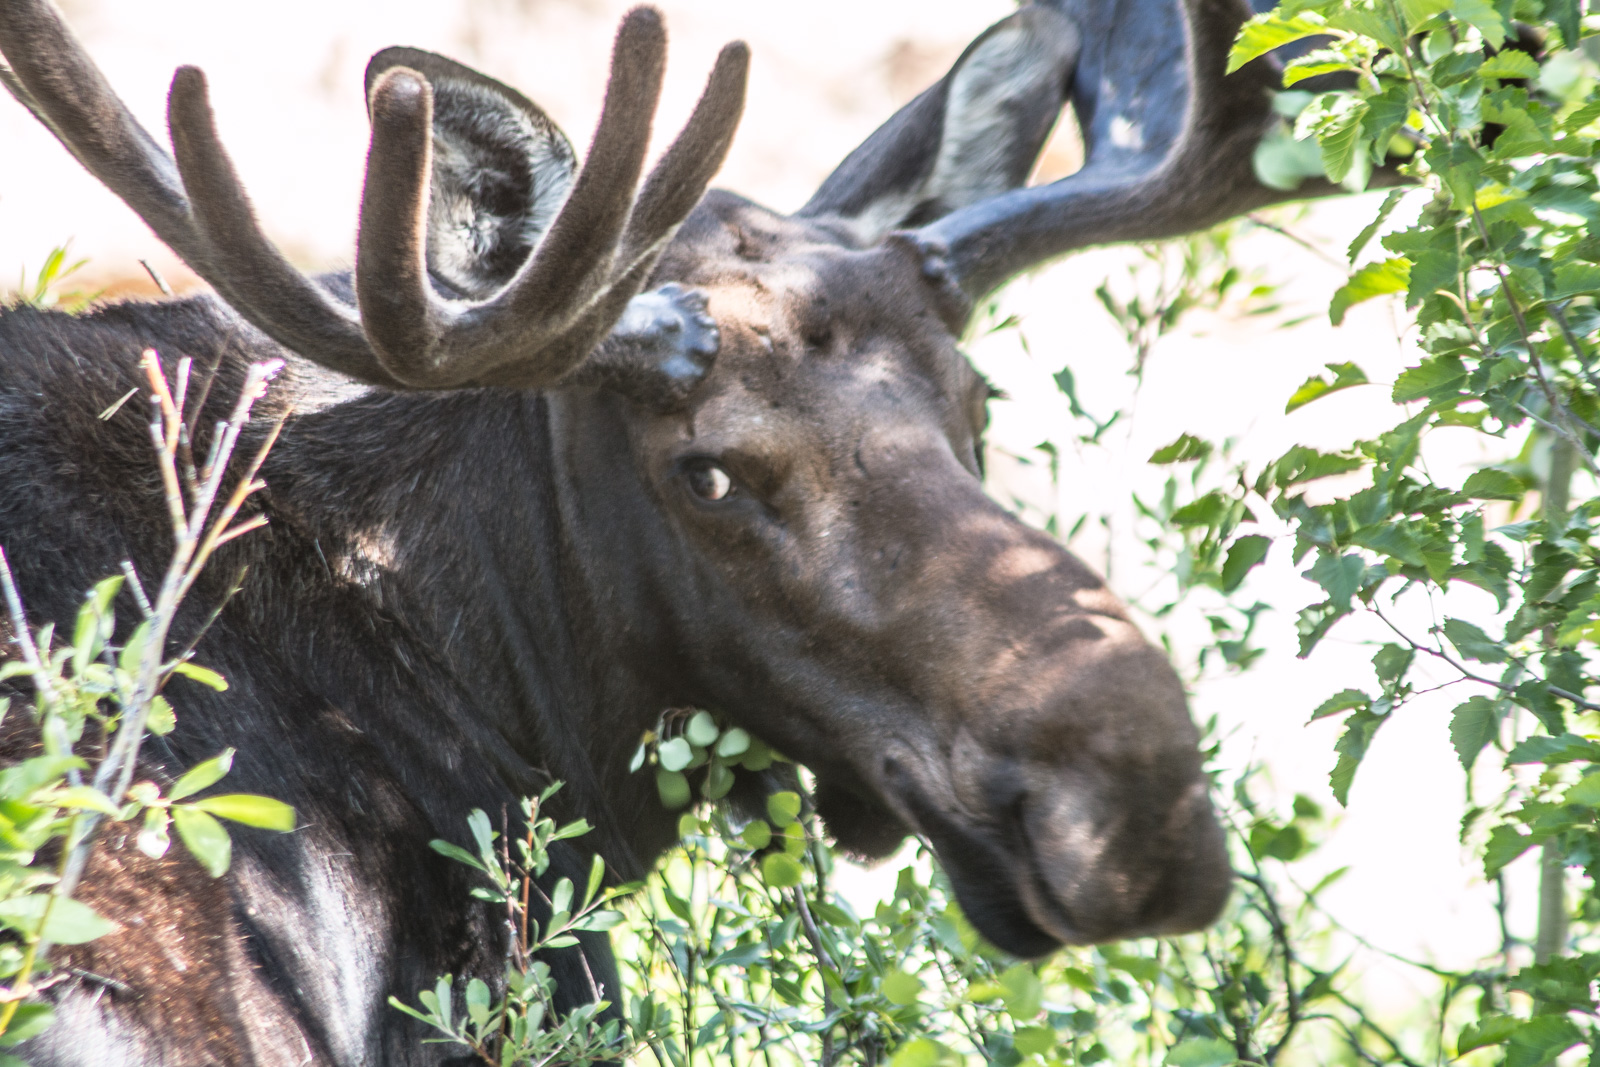 RMNP Bull Moose - So Ugly It's Cute